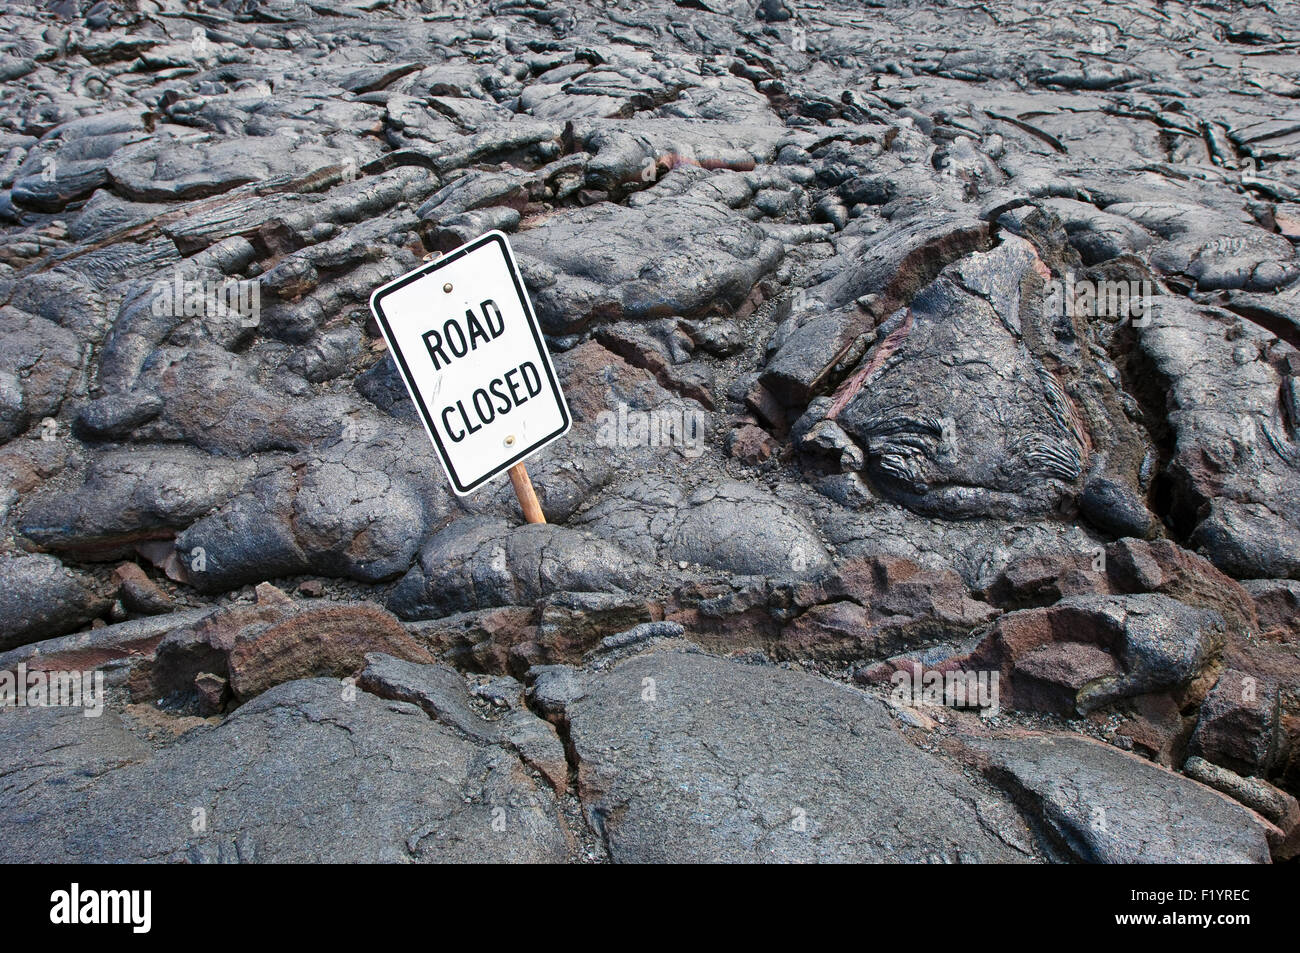 Lava flow and road sign on Chain of Craters Road, Big Island, Hawaii - Stock Image